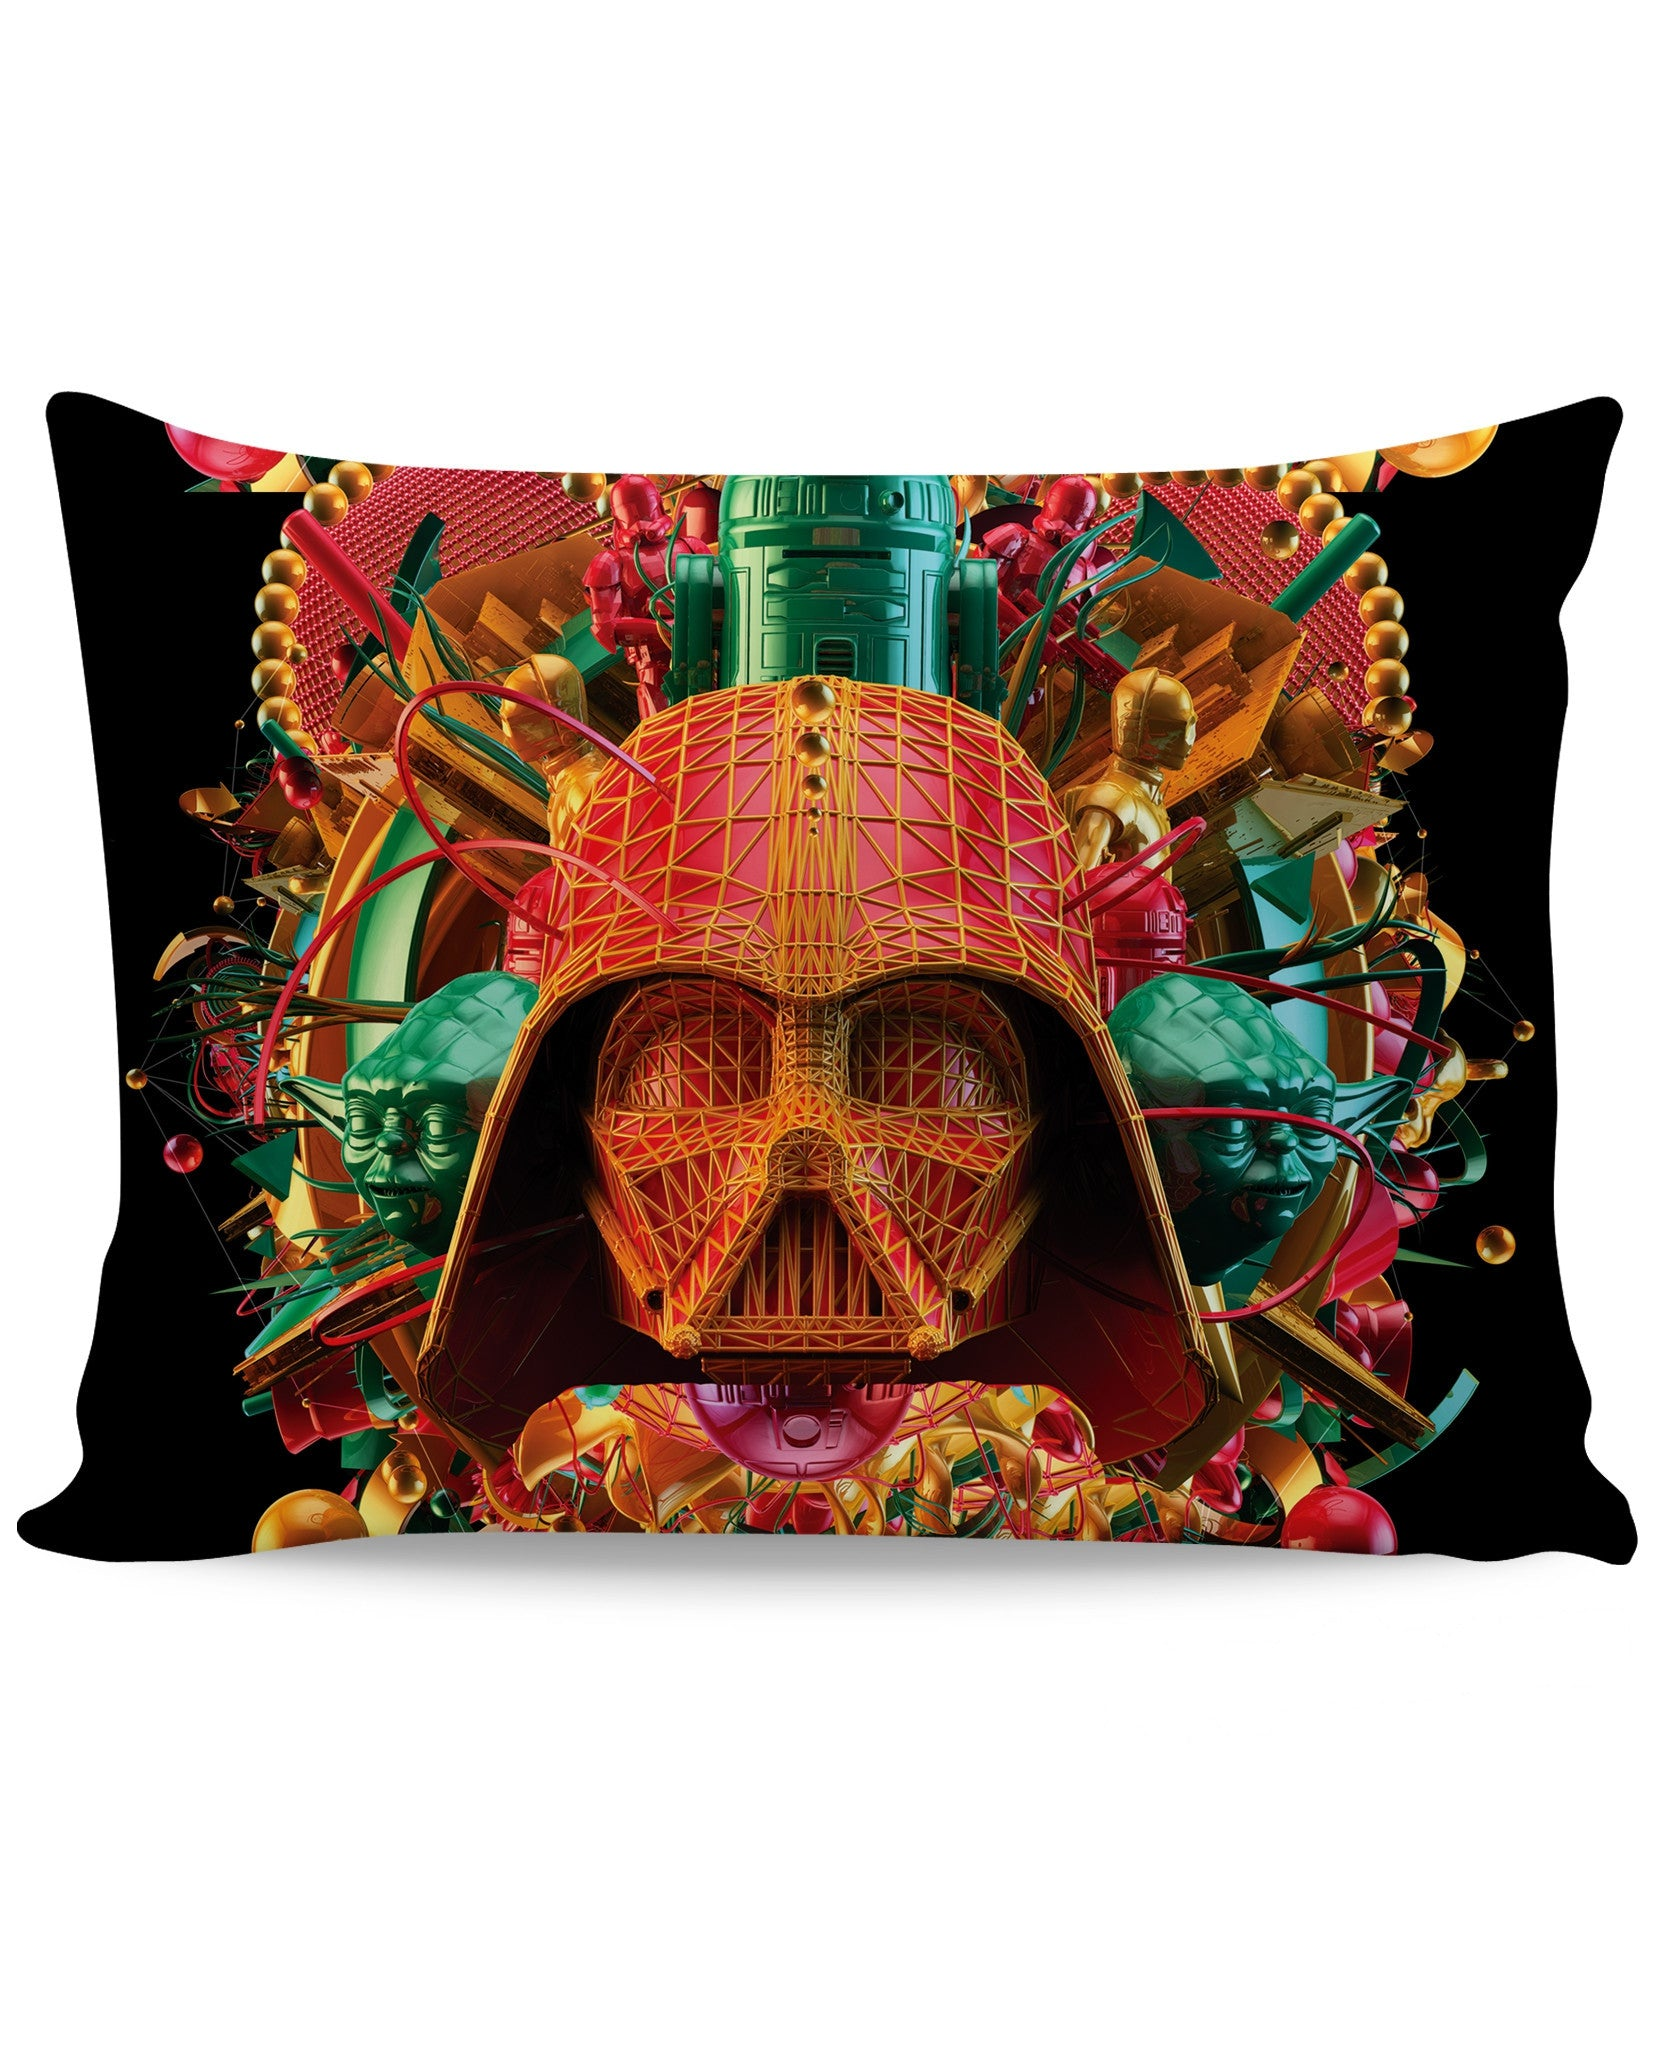 Digital Empire Pillow Case - TShirtsRUS.co